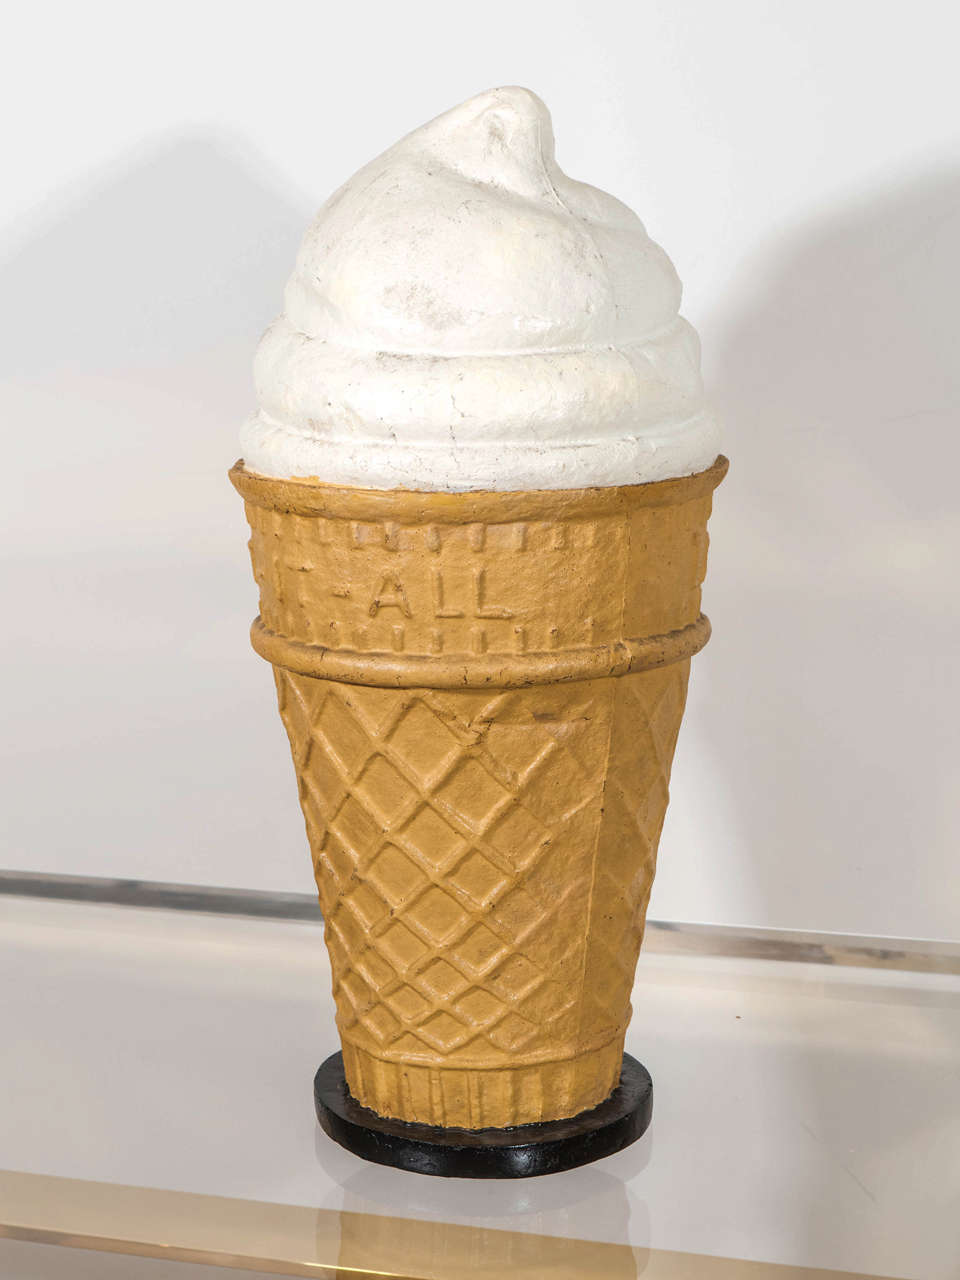 Composition Ice Cream Cone Promotional Display USA 1940s